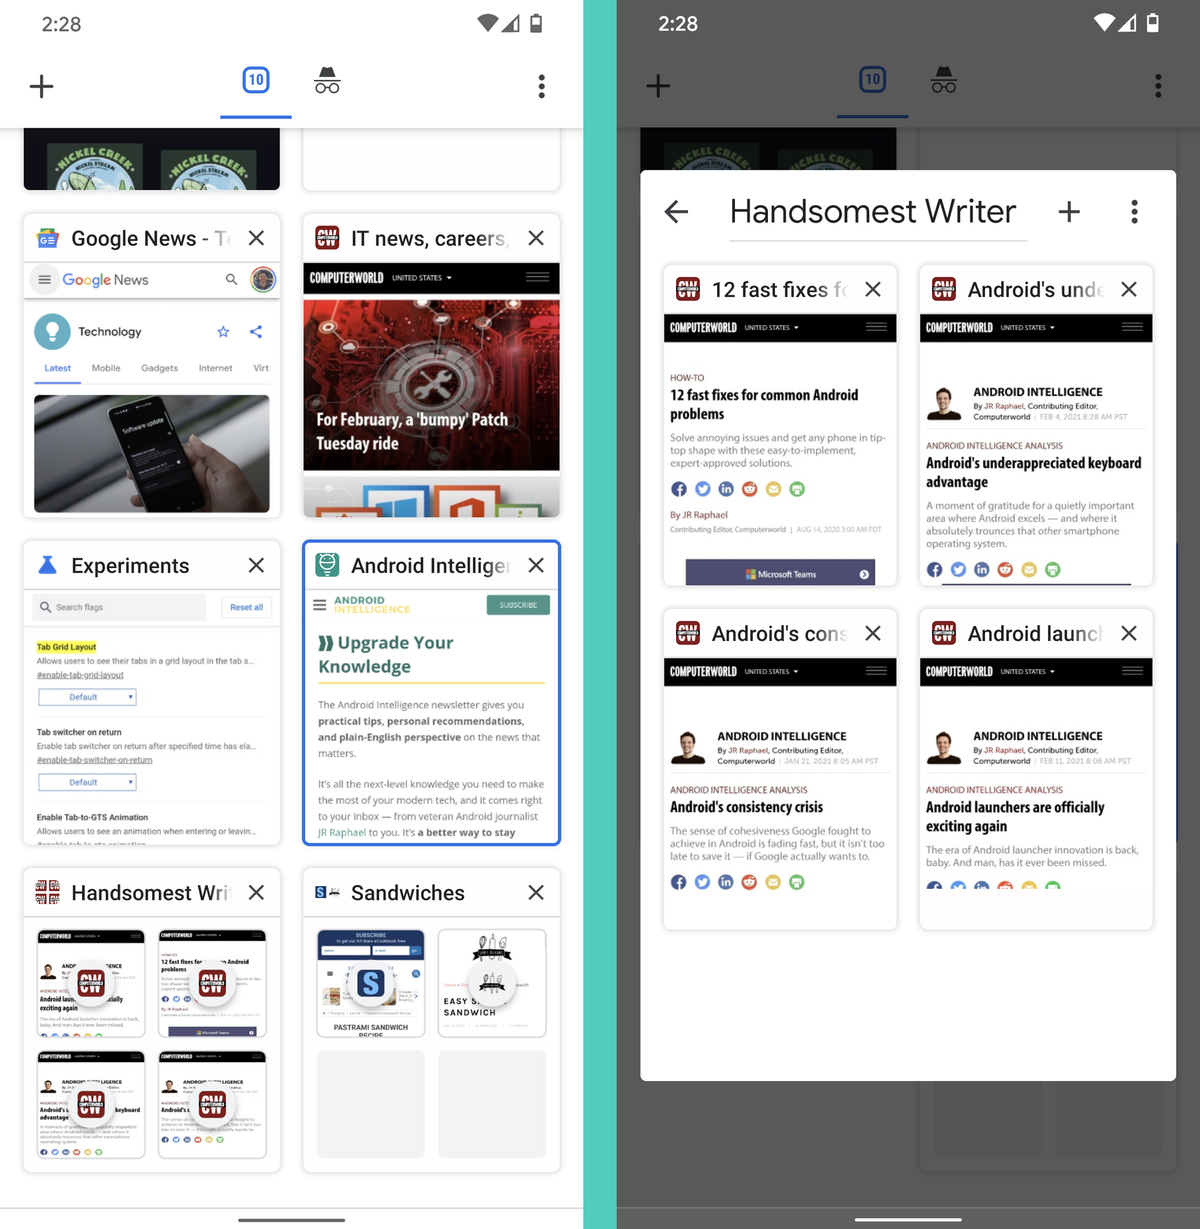 Chrome Android Settings: Tab grouping